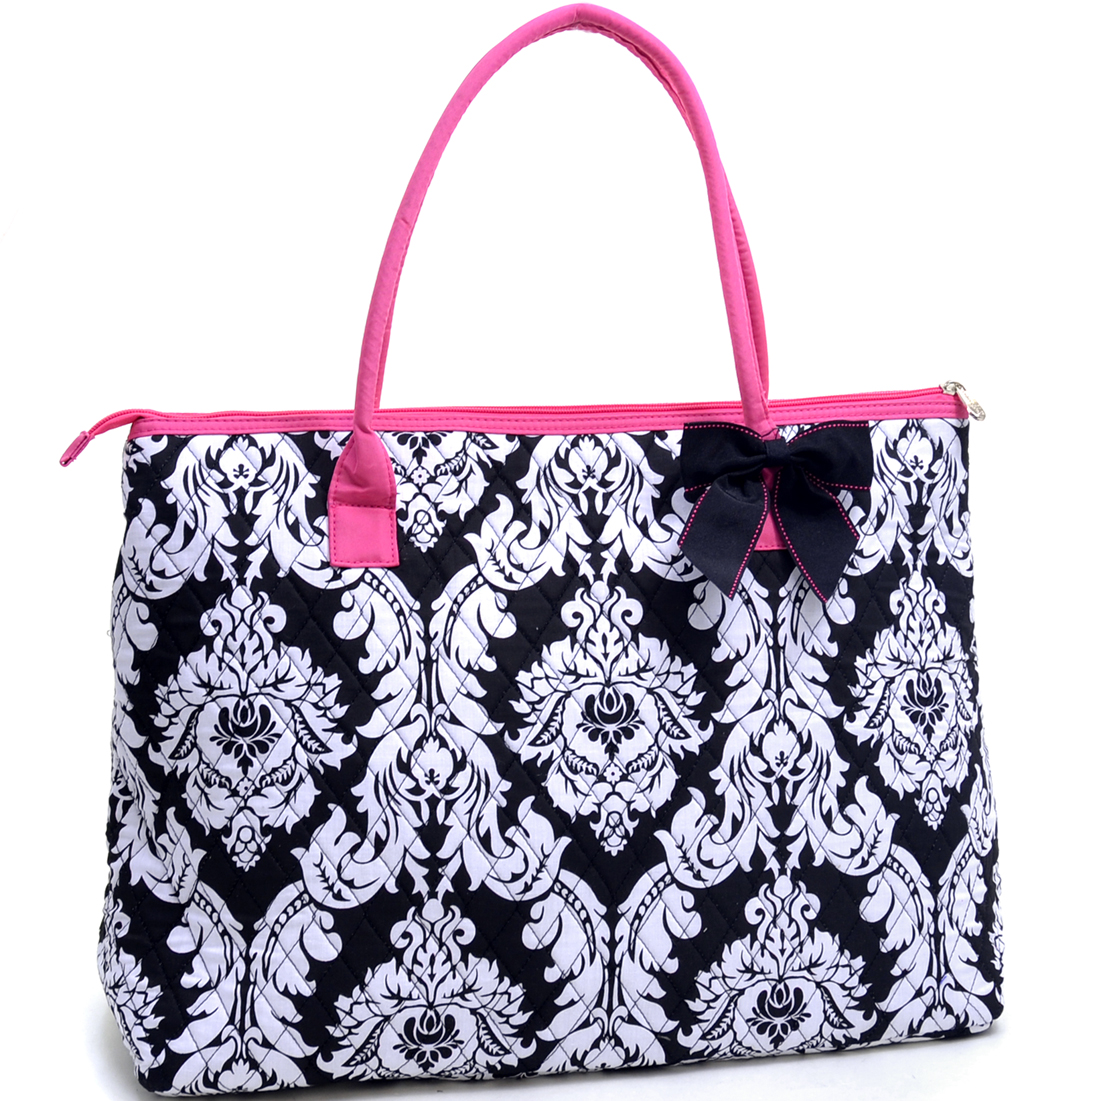 Oversized Quilted Tote Bag with Optional Bow Decor in Damask Print